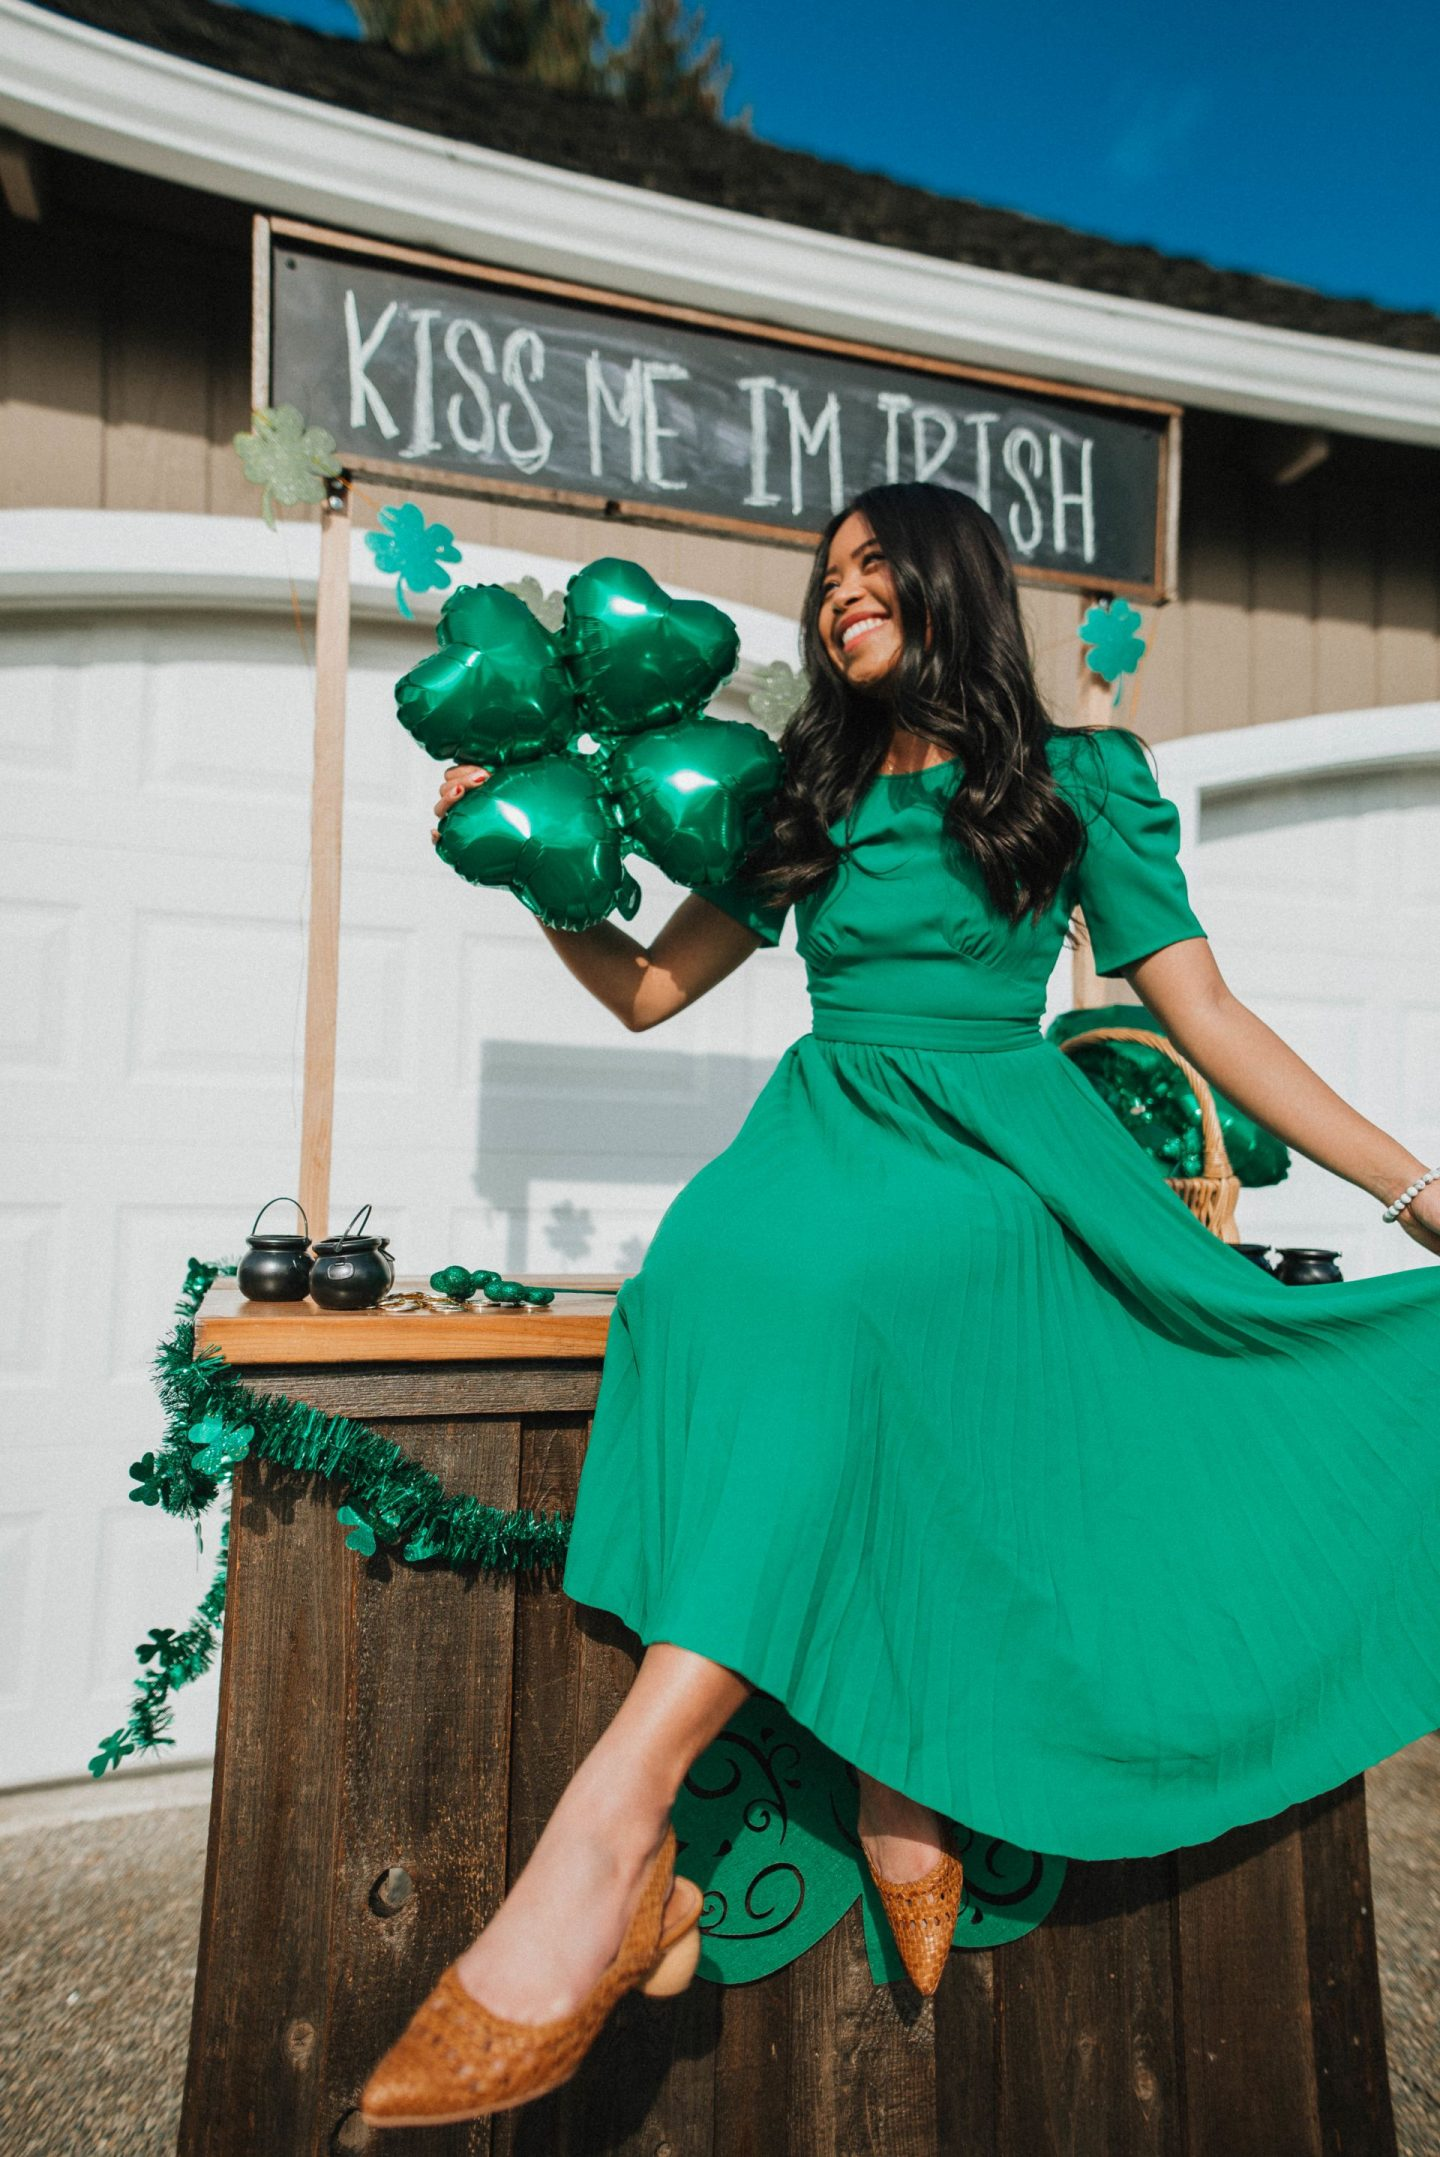 St. Patrick's Day Poses for women – St. Paddy's Day – St. Patrick's Day décor – St. Patrick's Day photo shoots – St. Paddy's day photo shoot ideas – image from www.emmasedition.com – copyright @emmasedition